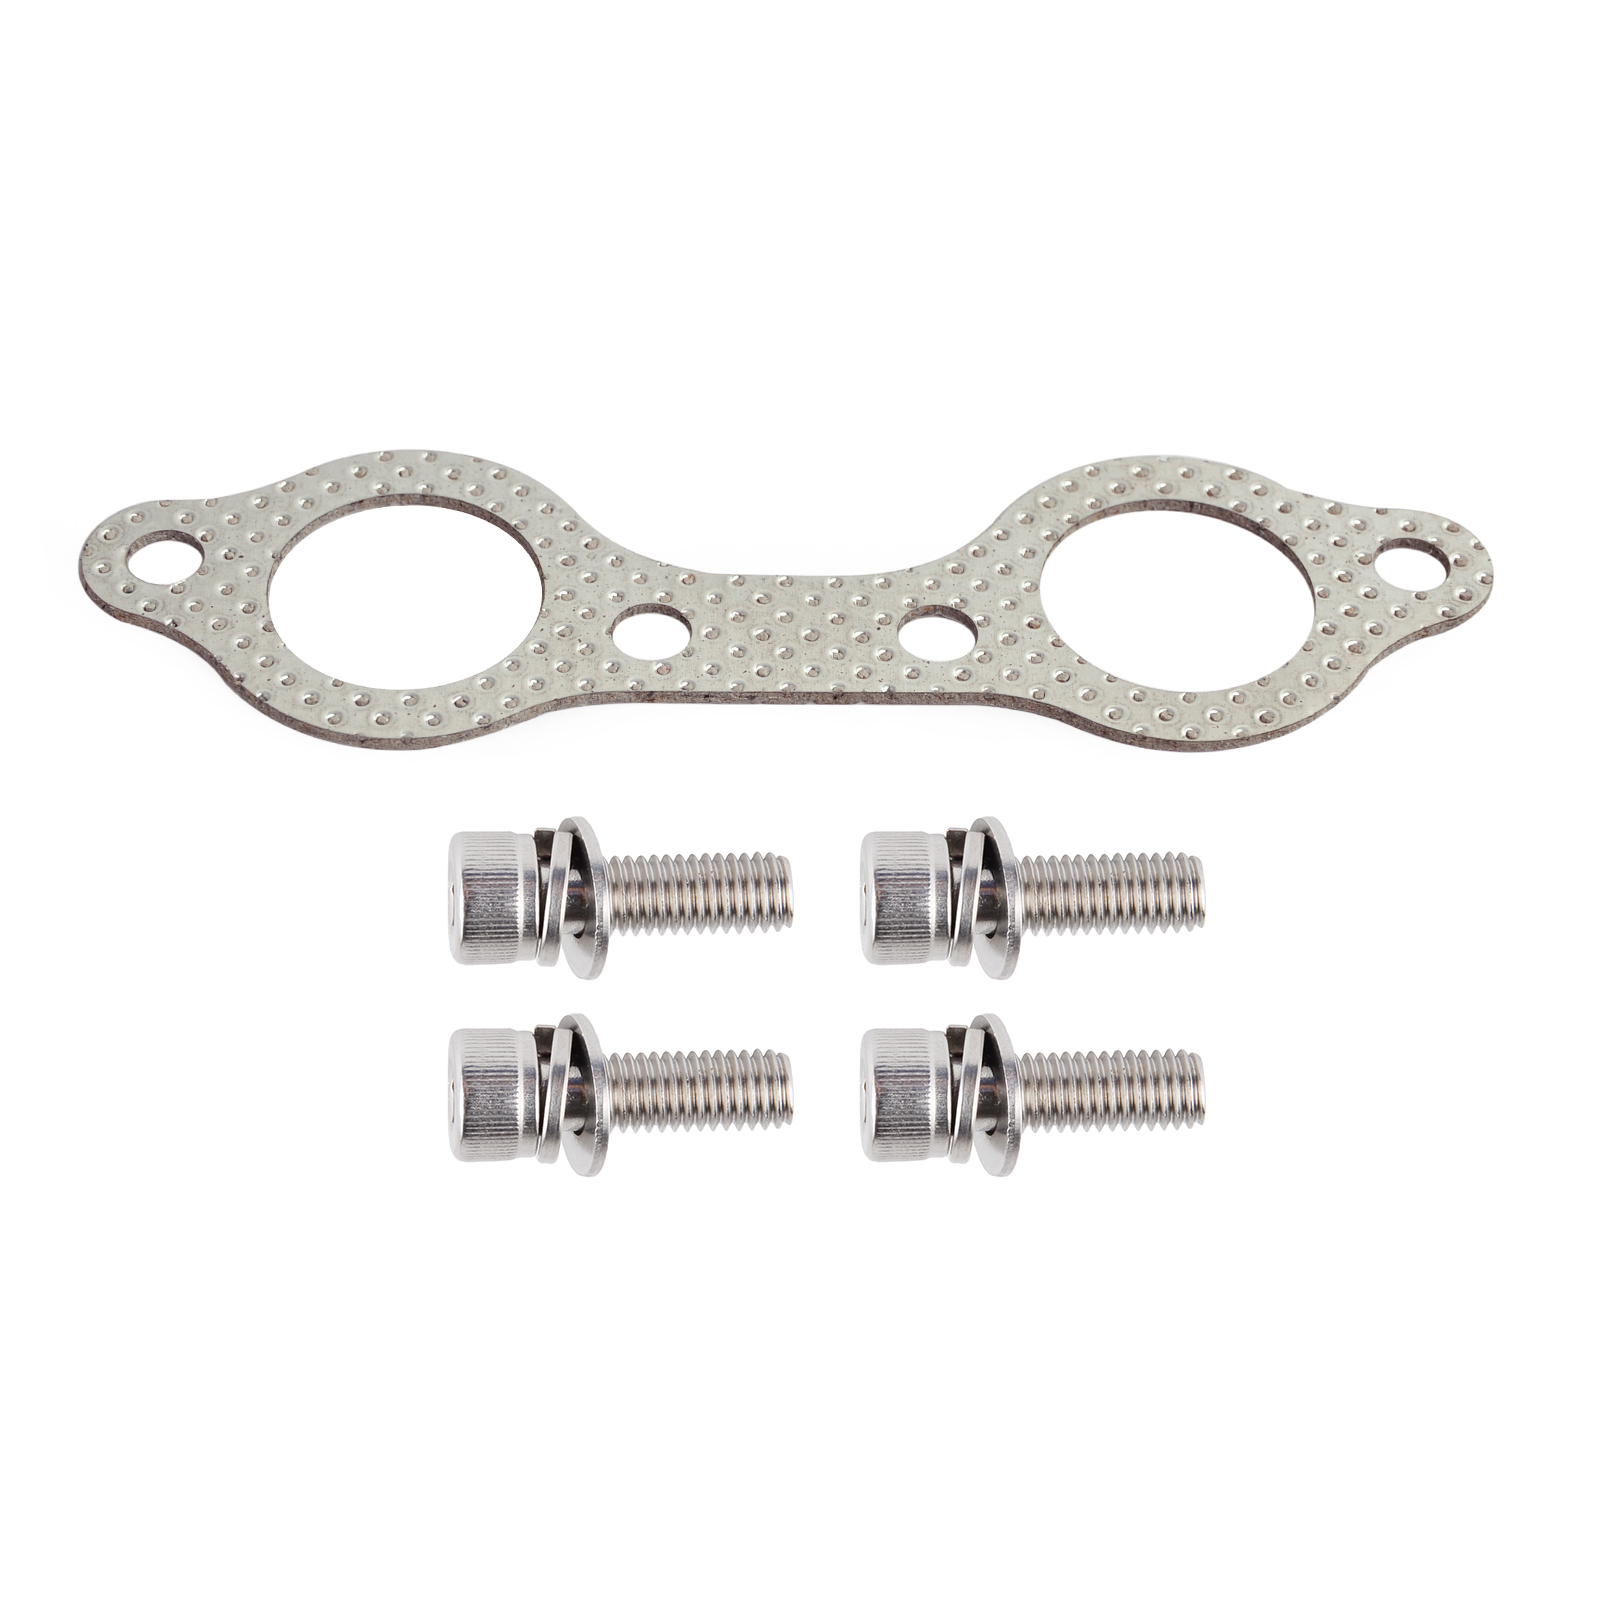 Exhaust Muffler Manifold Gasket Bolt For Polaris Rzr 800